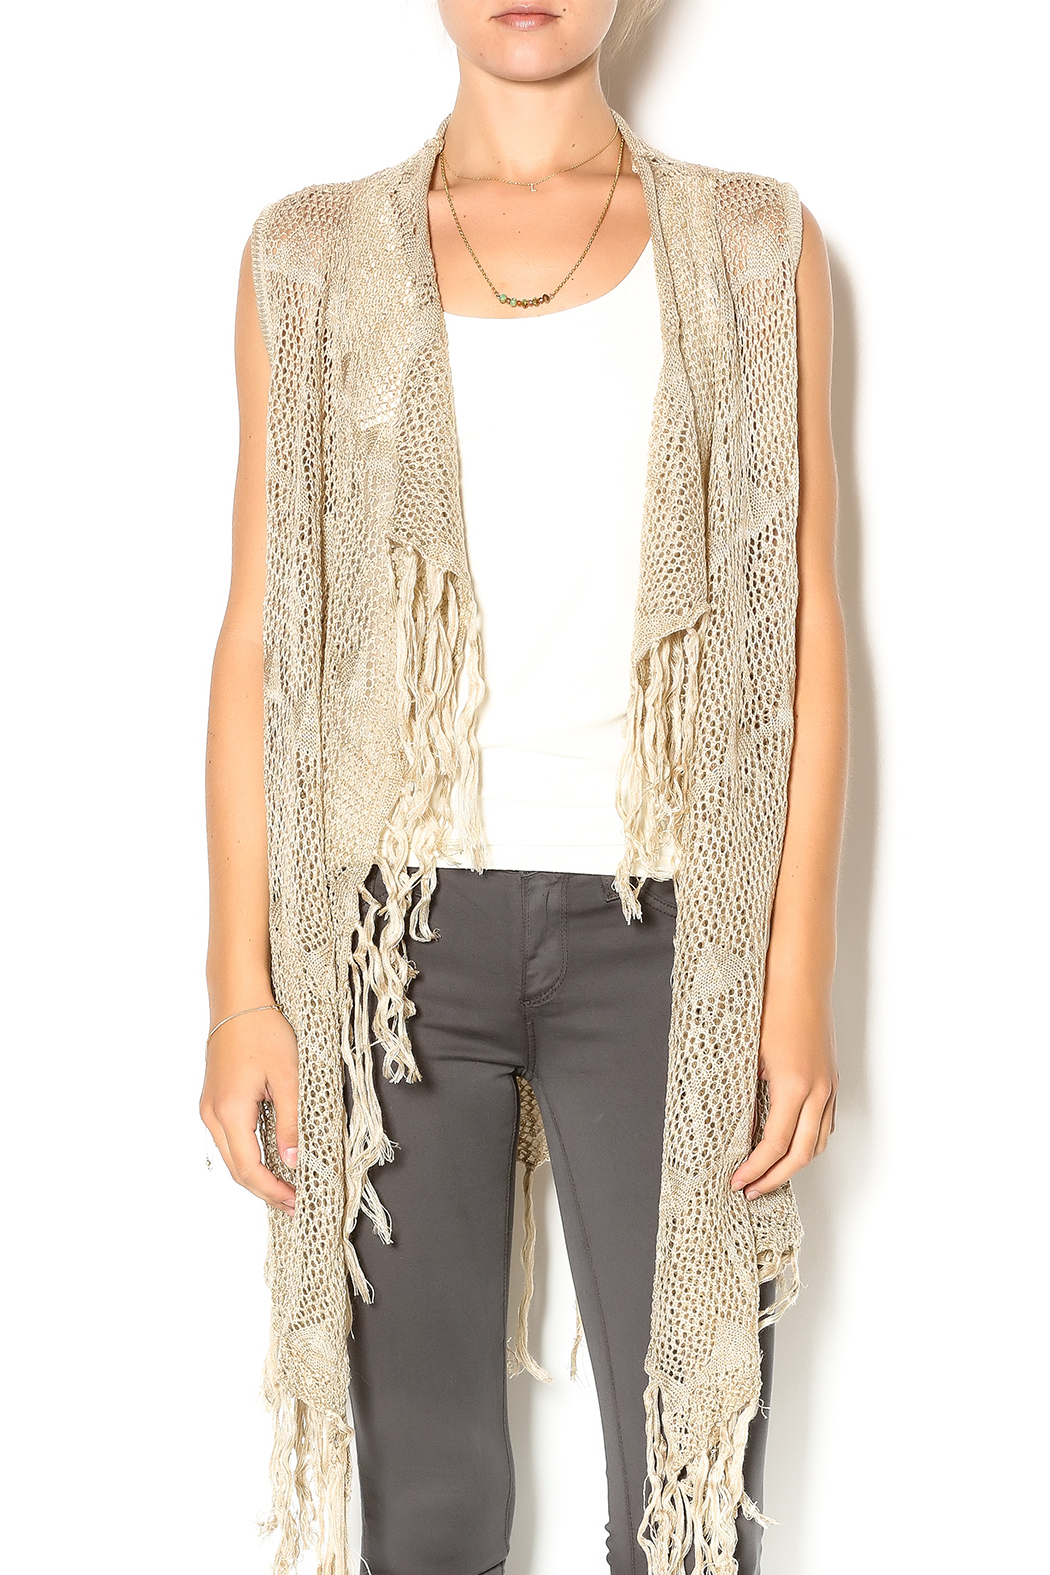 JOH Crochet Fringe Vest from Palm Beach by Glitz and Glam Boutique  Shoptiques